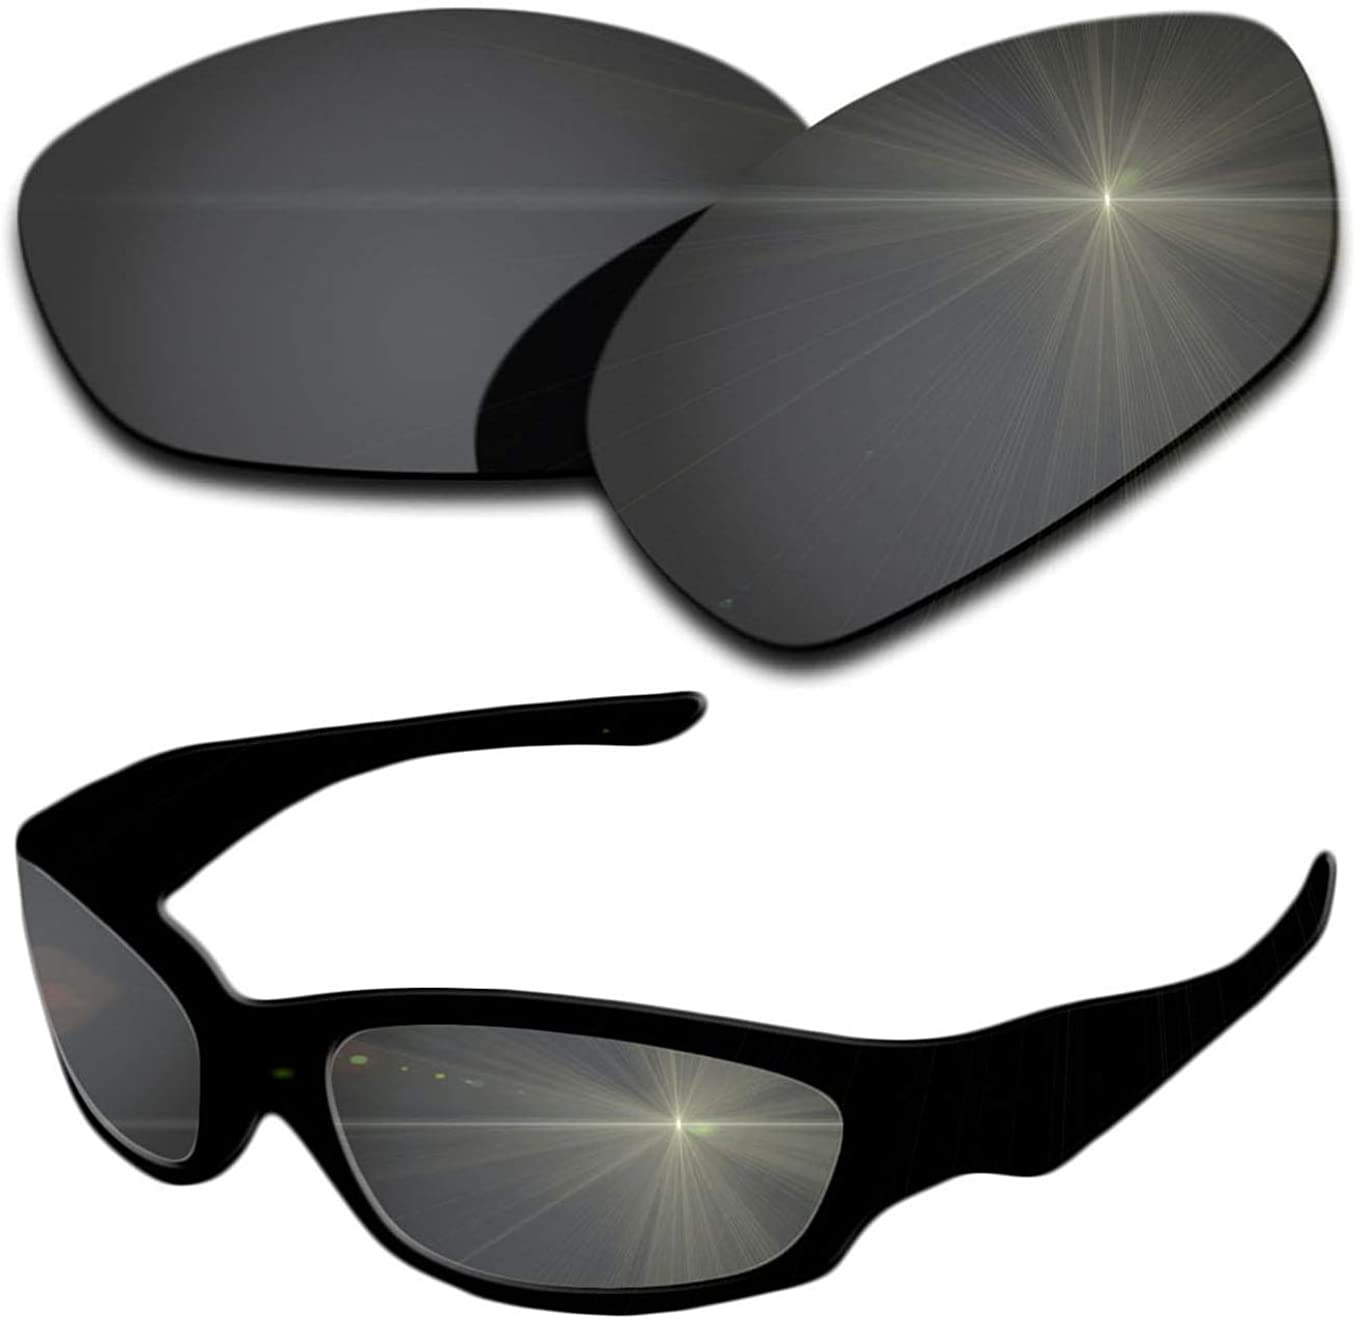 Polarized Replacement Lenses for Oakley Straight Jacket 2007 Sunglasses - Multiple Colors